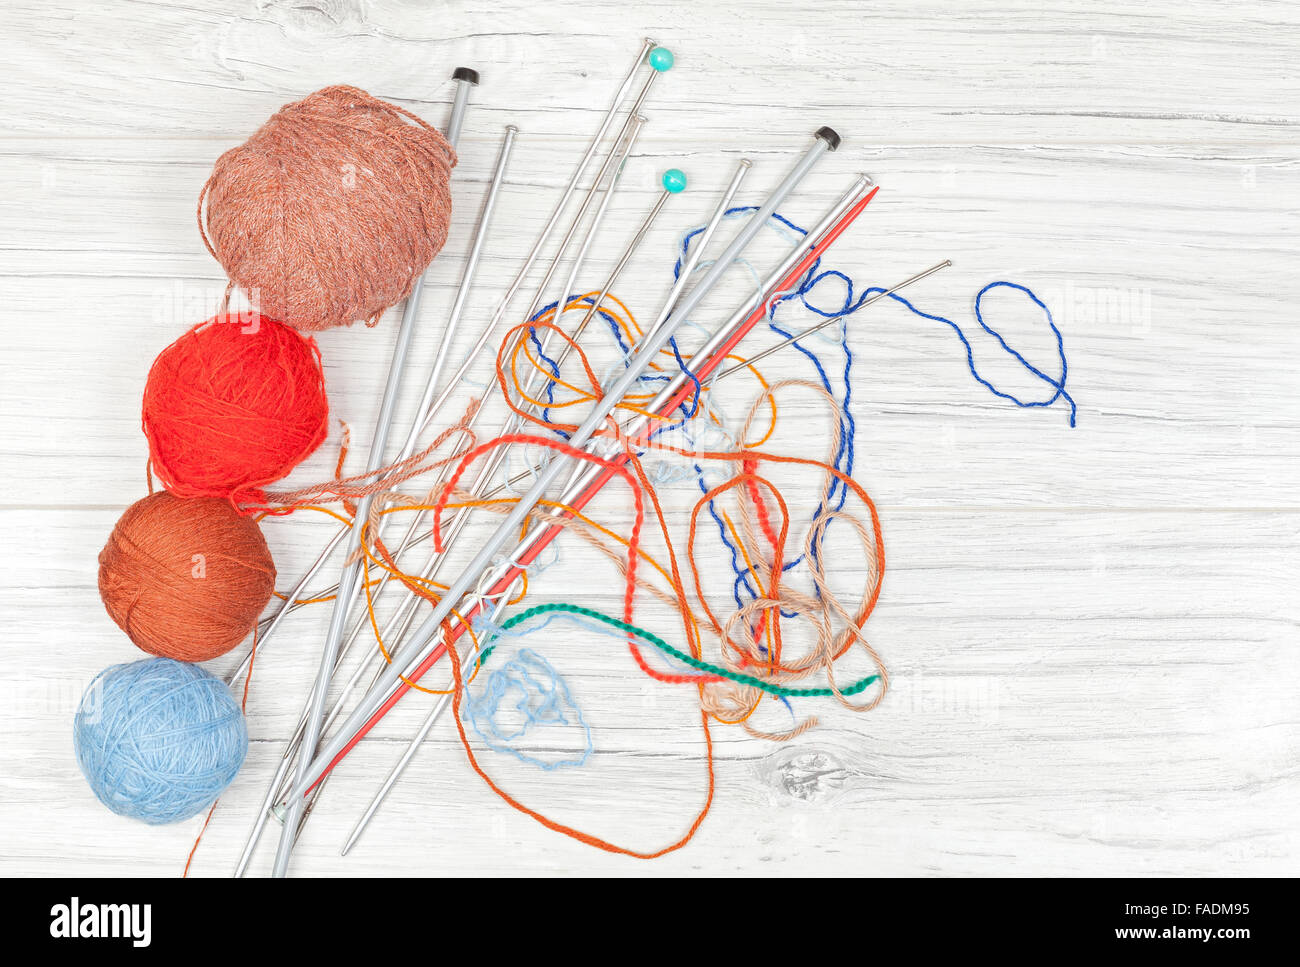 Tangled threads with yarn balls and needles on wooden board, concept background with space for text. - Stock Image